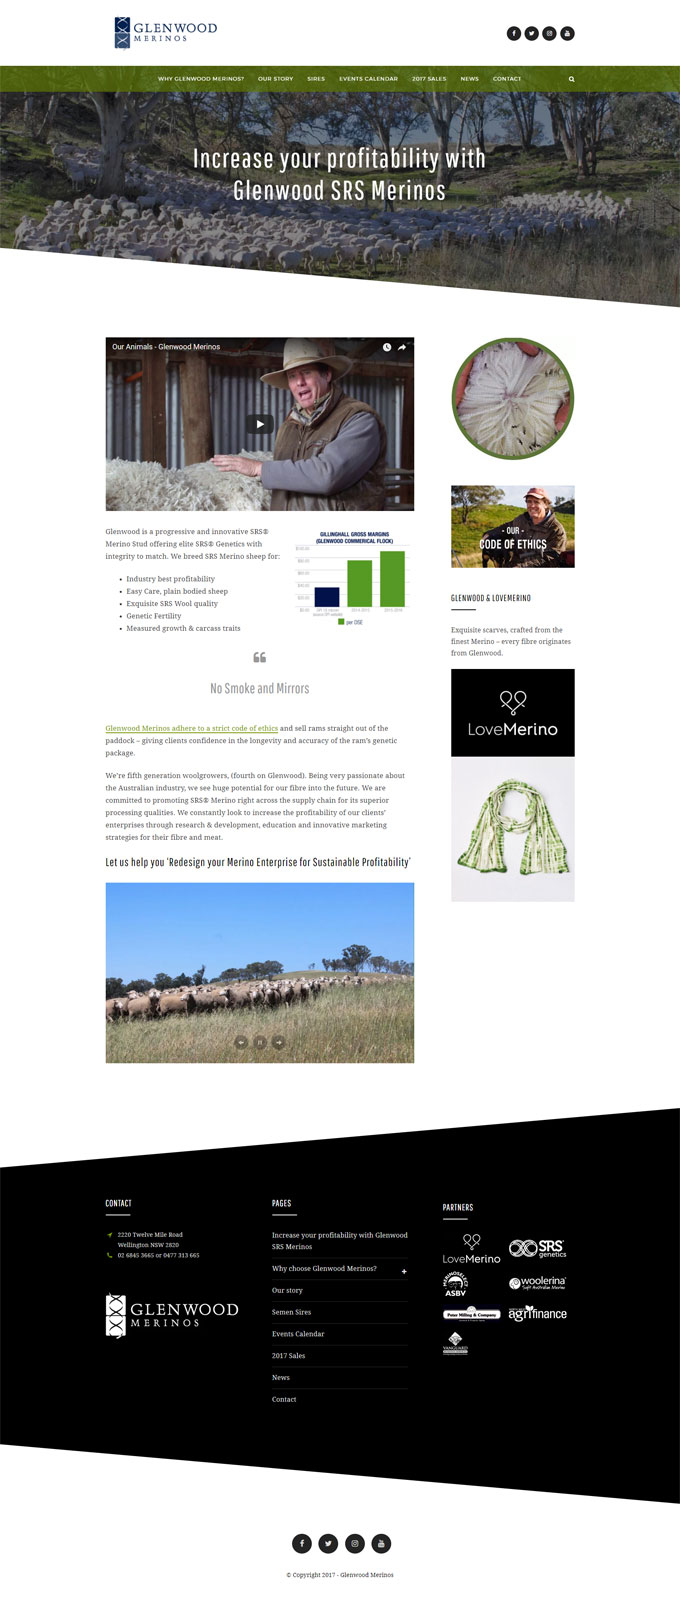 Glenwood-Merinos-homepage